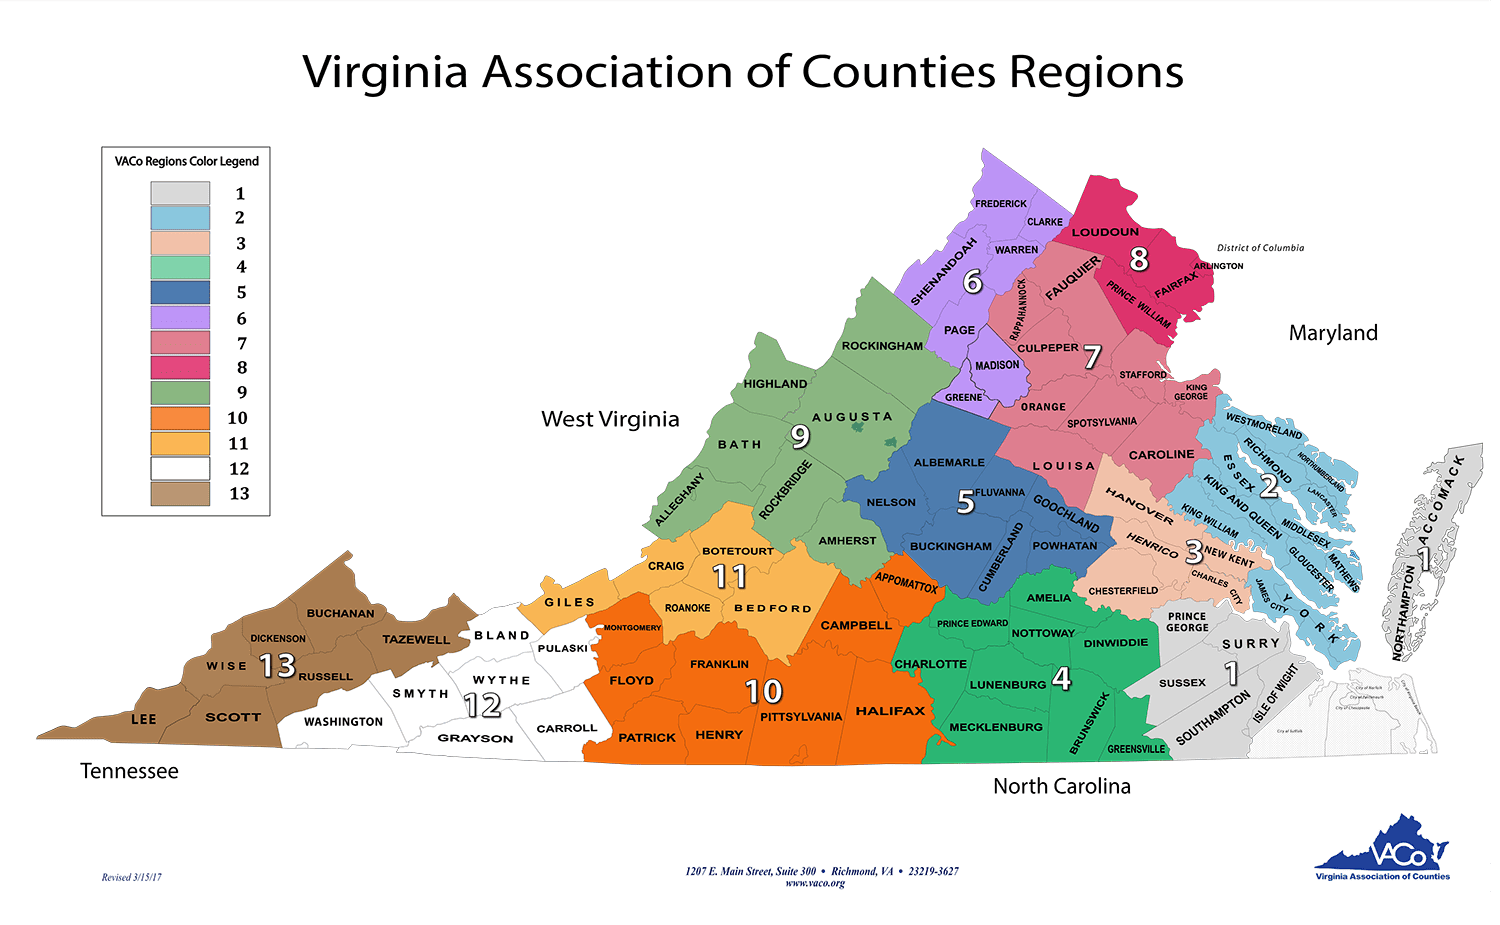 County Map Of Virginia County Websites Links   Virginia Association of Counties County Map Of Virginia